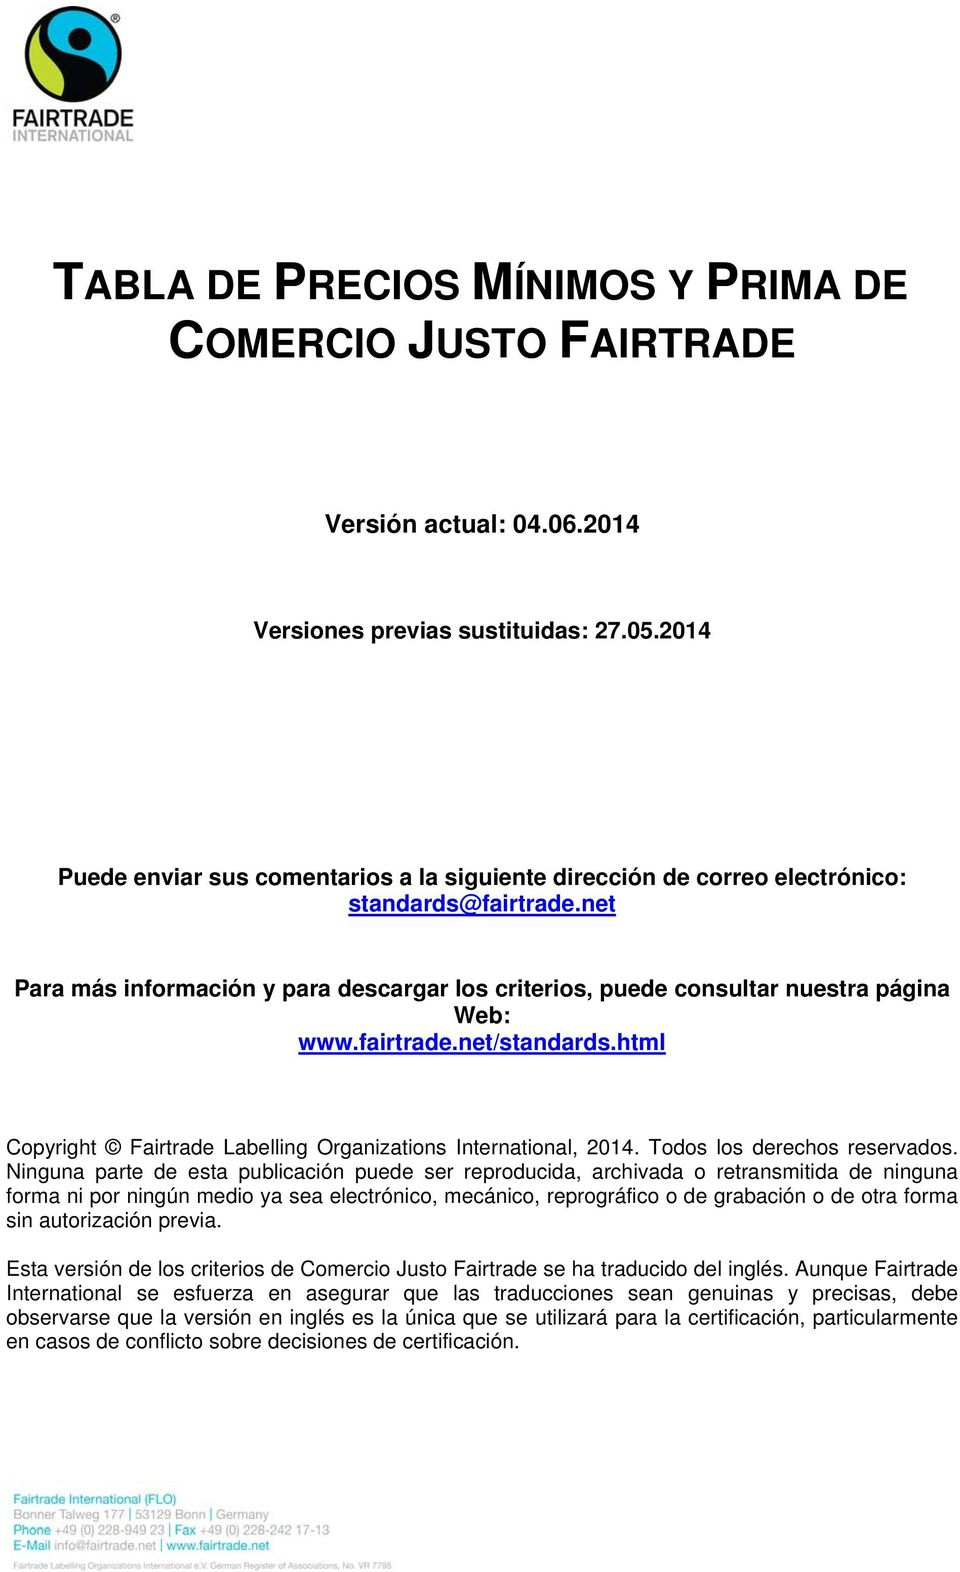 html Copyright Fairtrade Labelling Organization International, 2014. Todo lo derecho reervado.